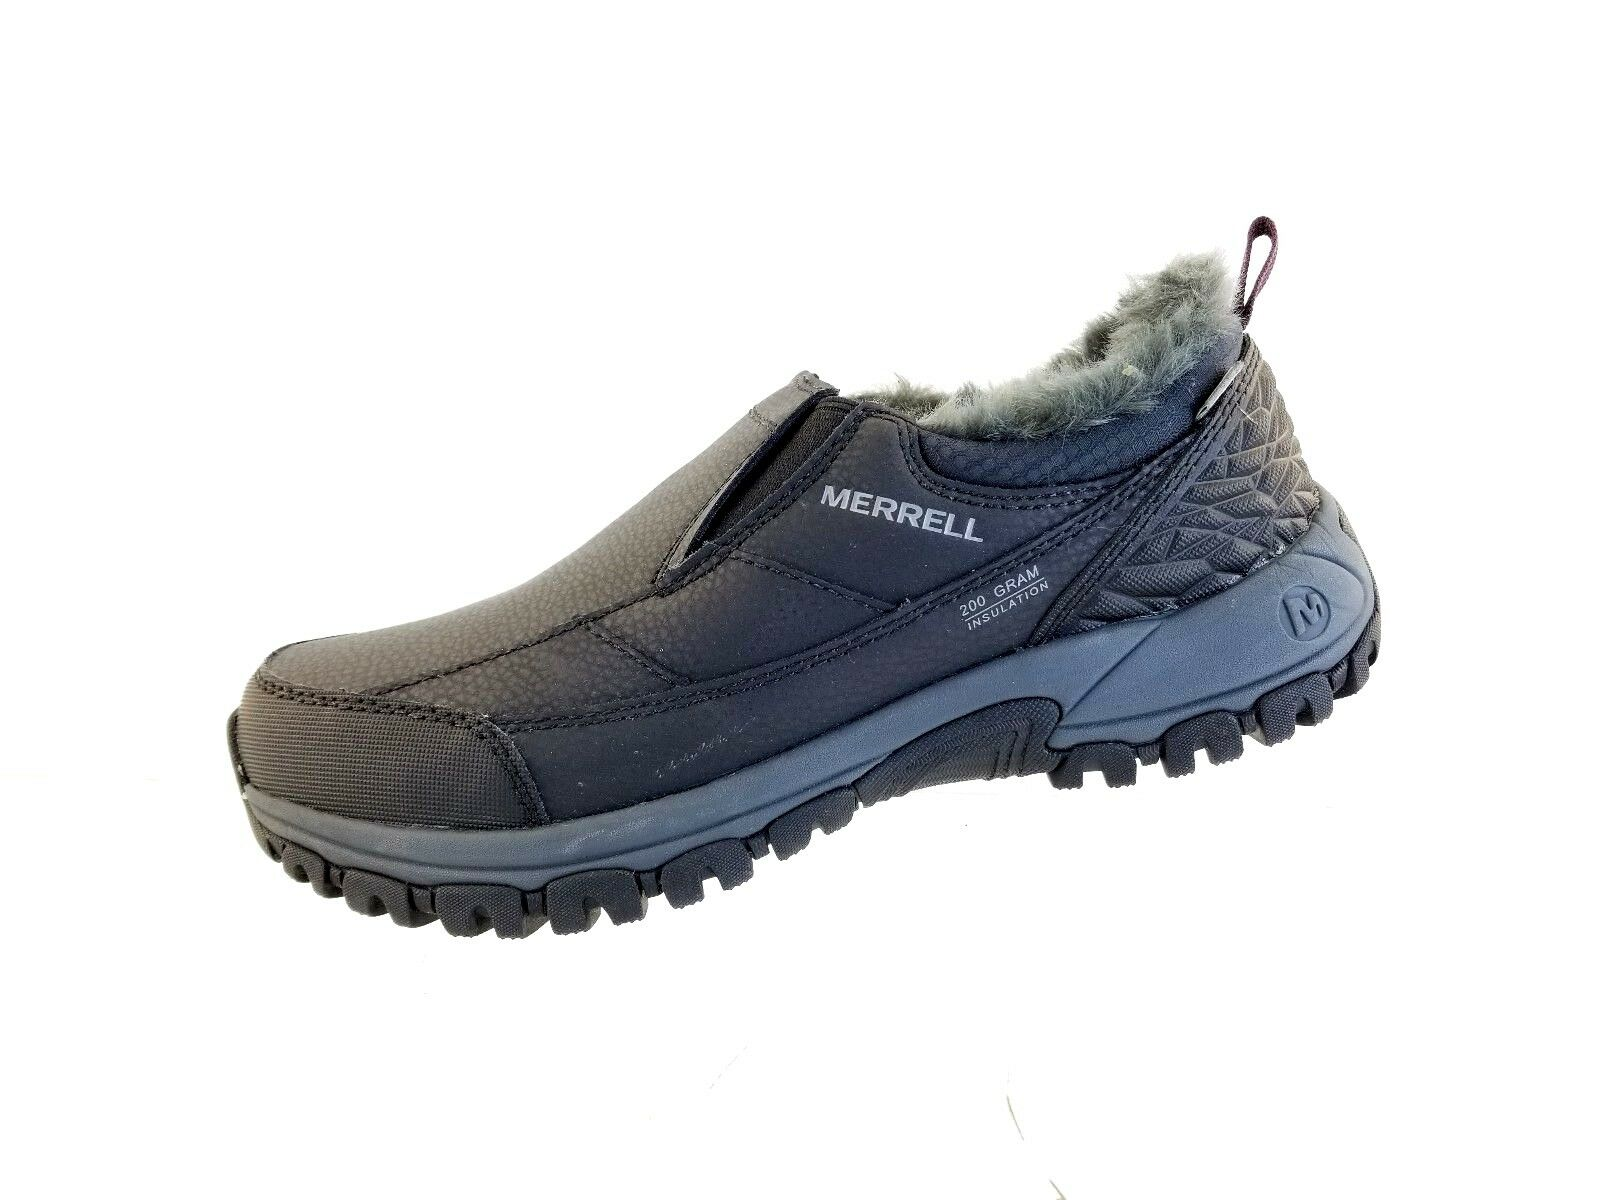 merrell endersy femmes 200gram sèche thermo thermo thermo - gpm j317925c chaussures noires sz 6 8e8aae